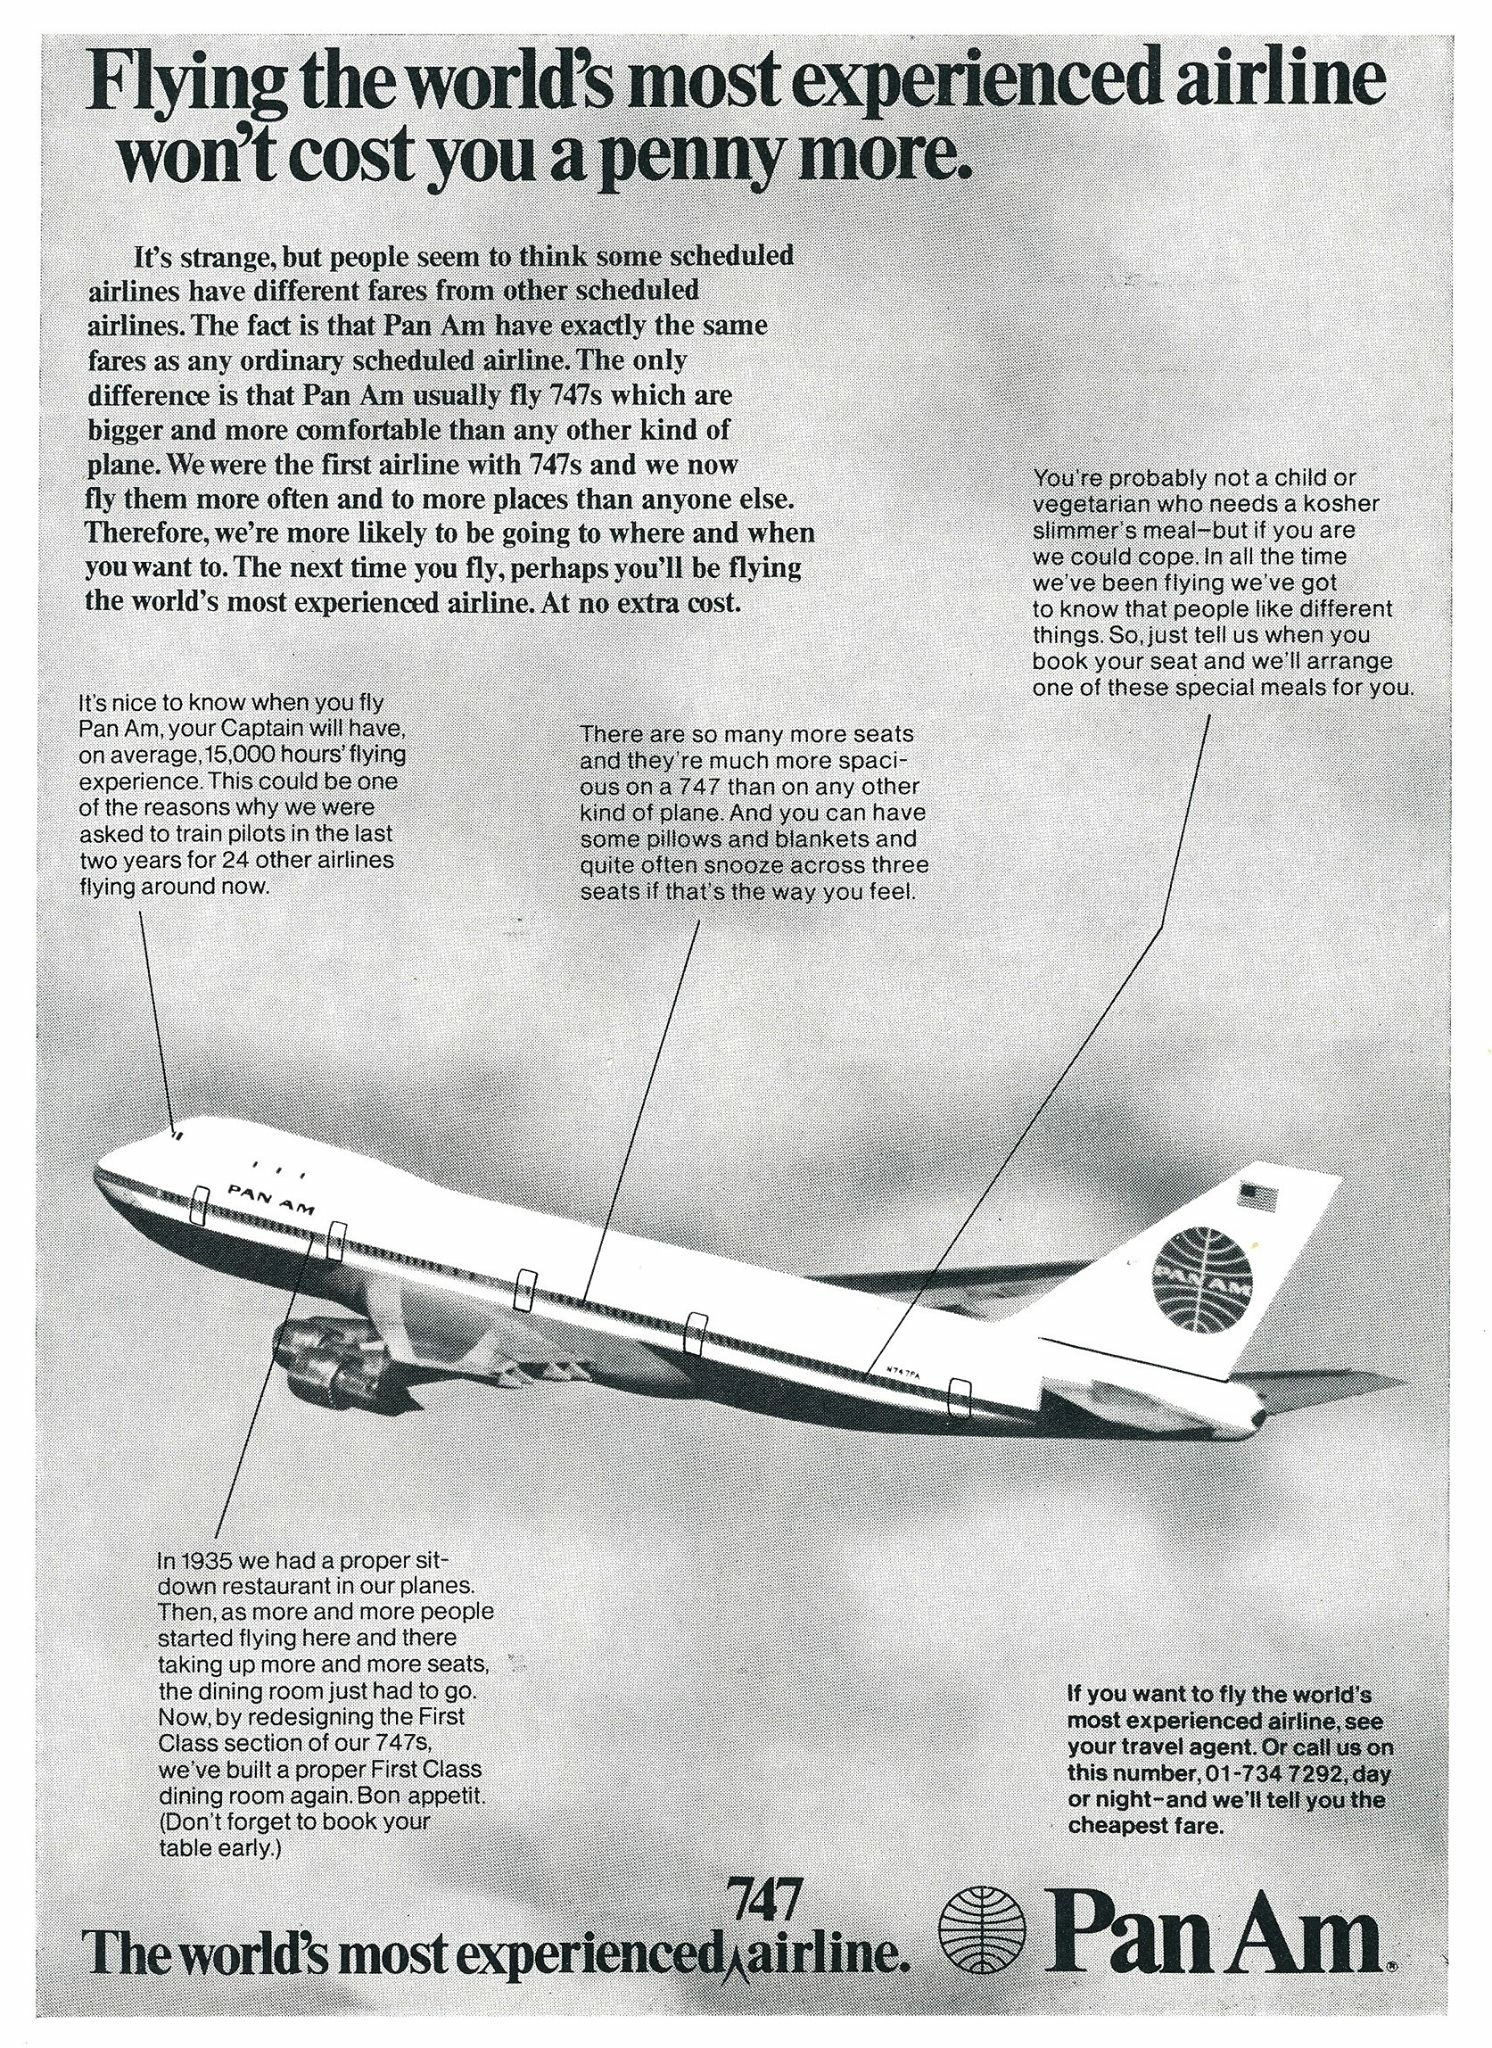 Cutaway of a pan am boeing 377 stratocruiser image from chris sloan - Panam 1970s